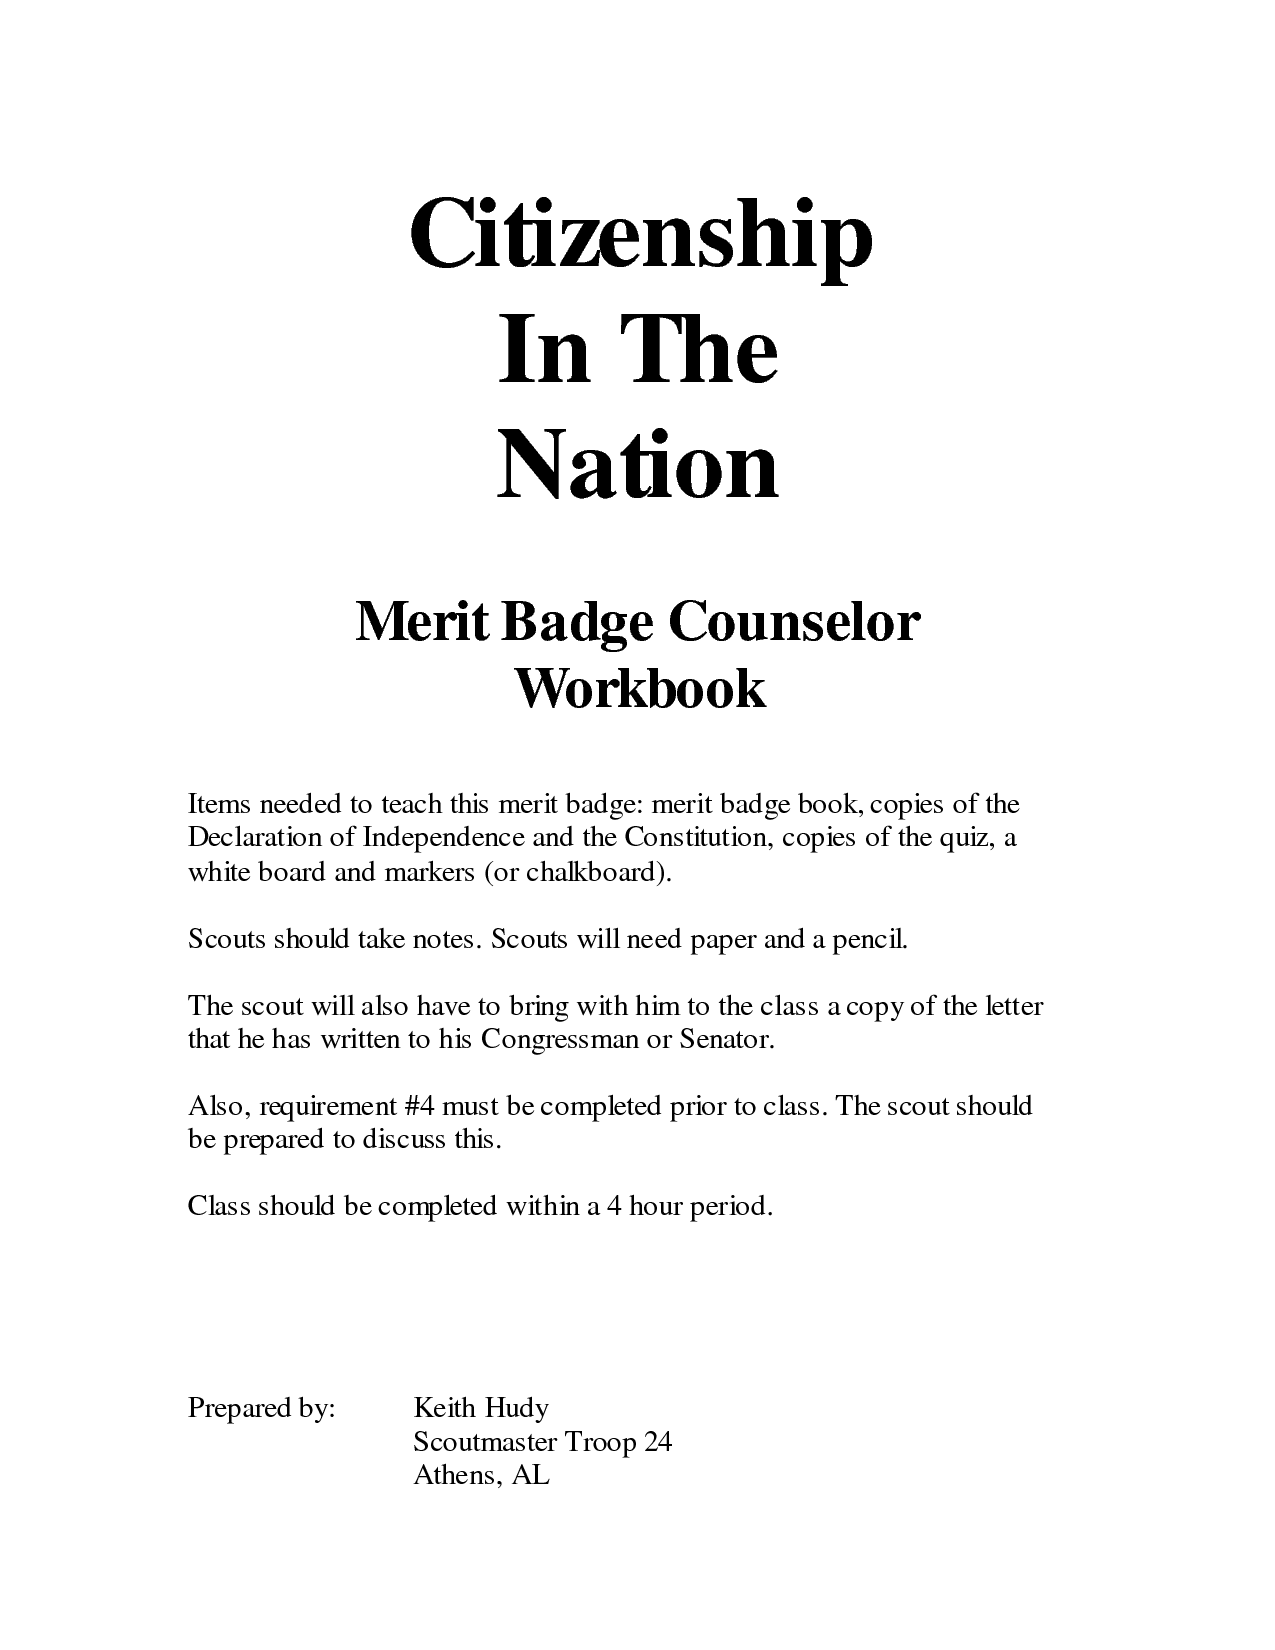 Munications Merit Badge Worksheet Answers